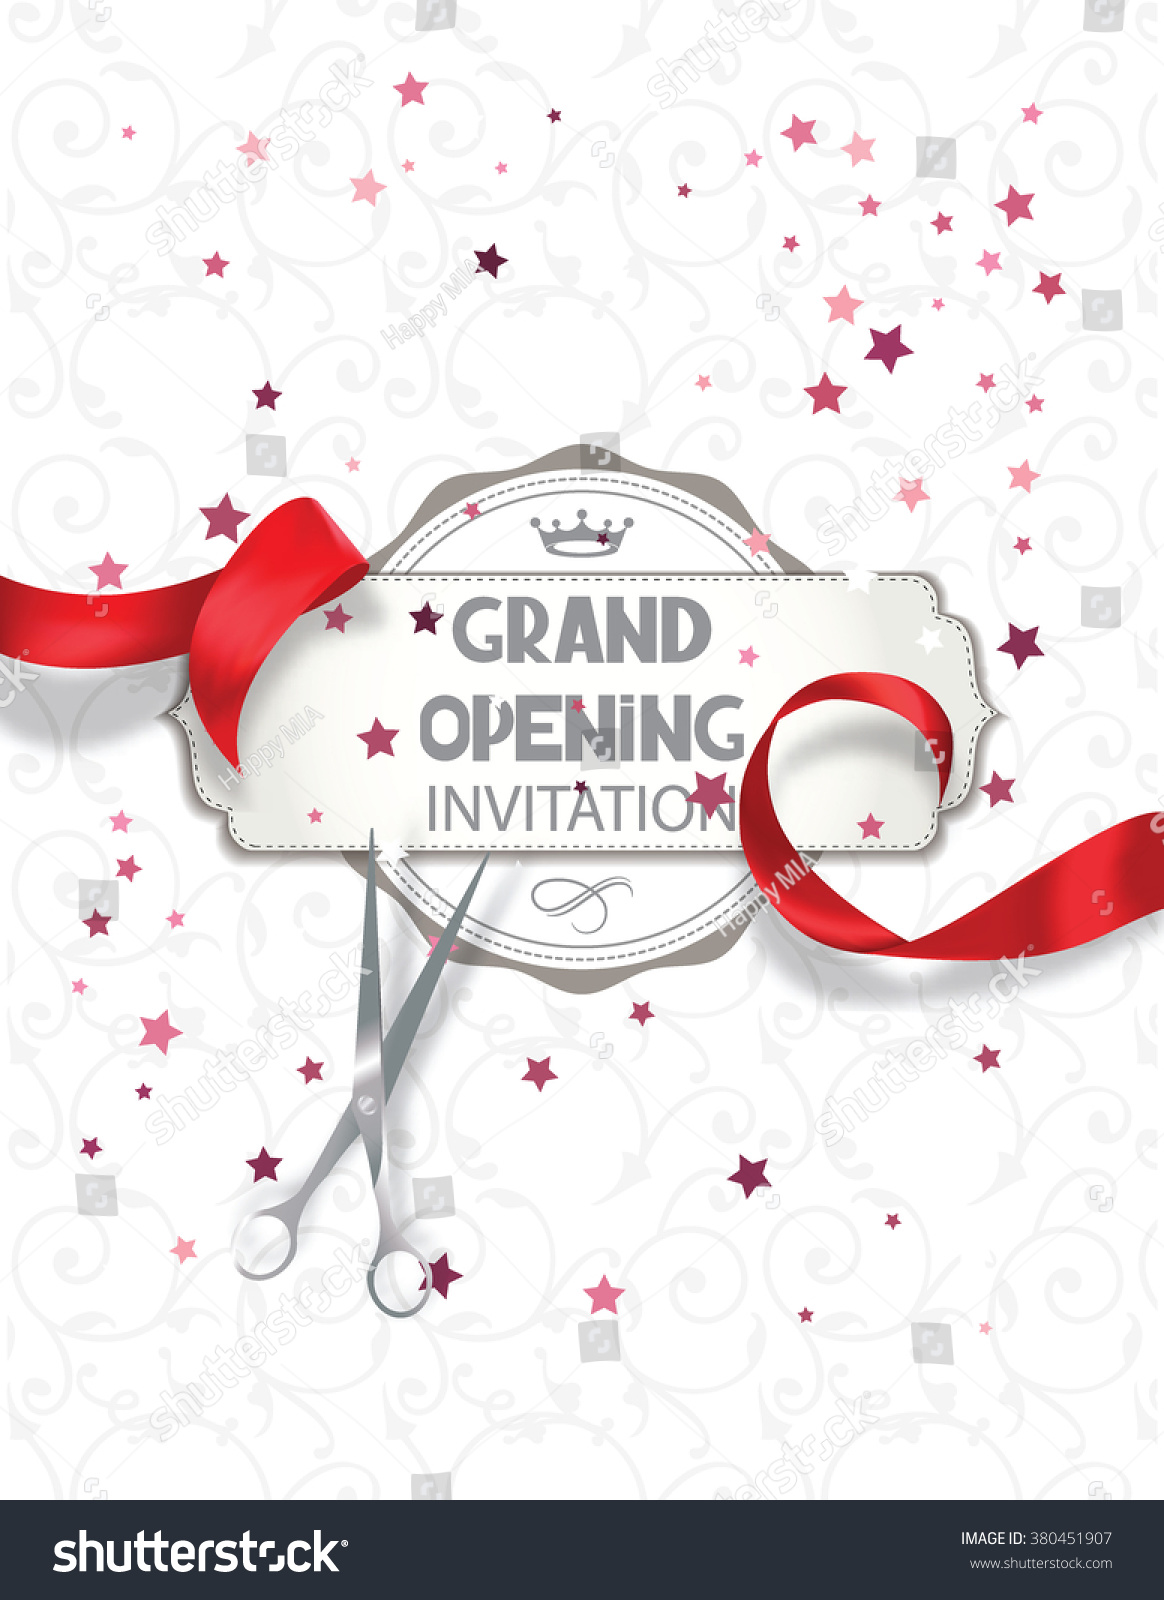 Grand opening invitation card red silk stock vector hd royalty free grand opening invitation card with red silk ribbon and scissors stopboris Image collections